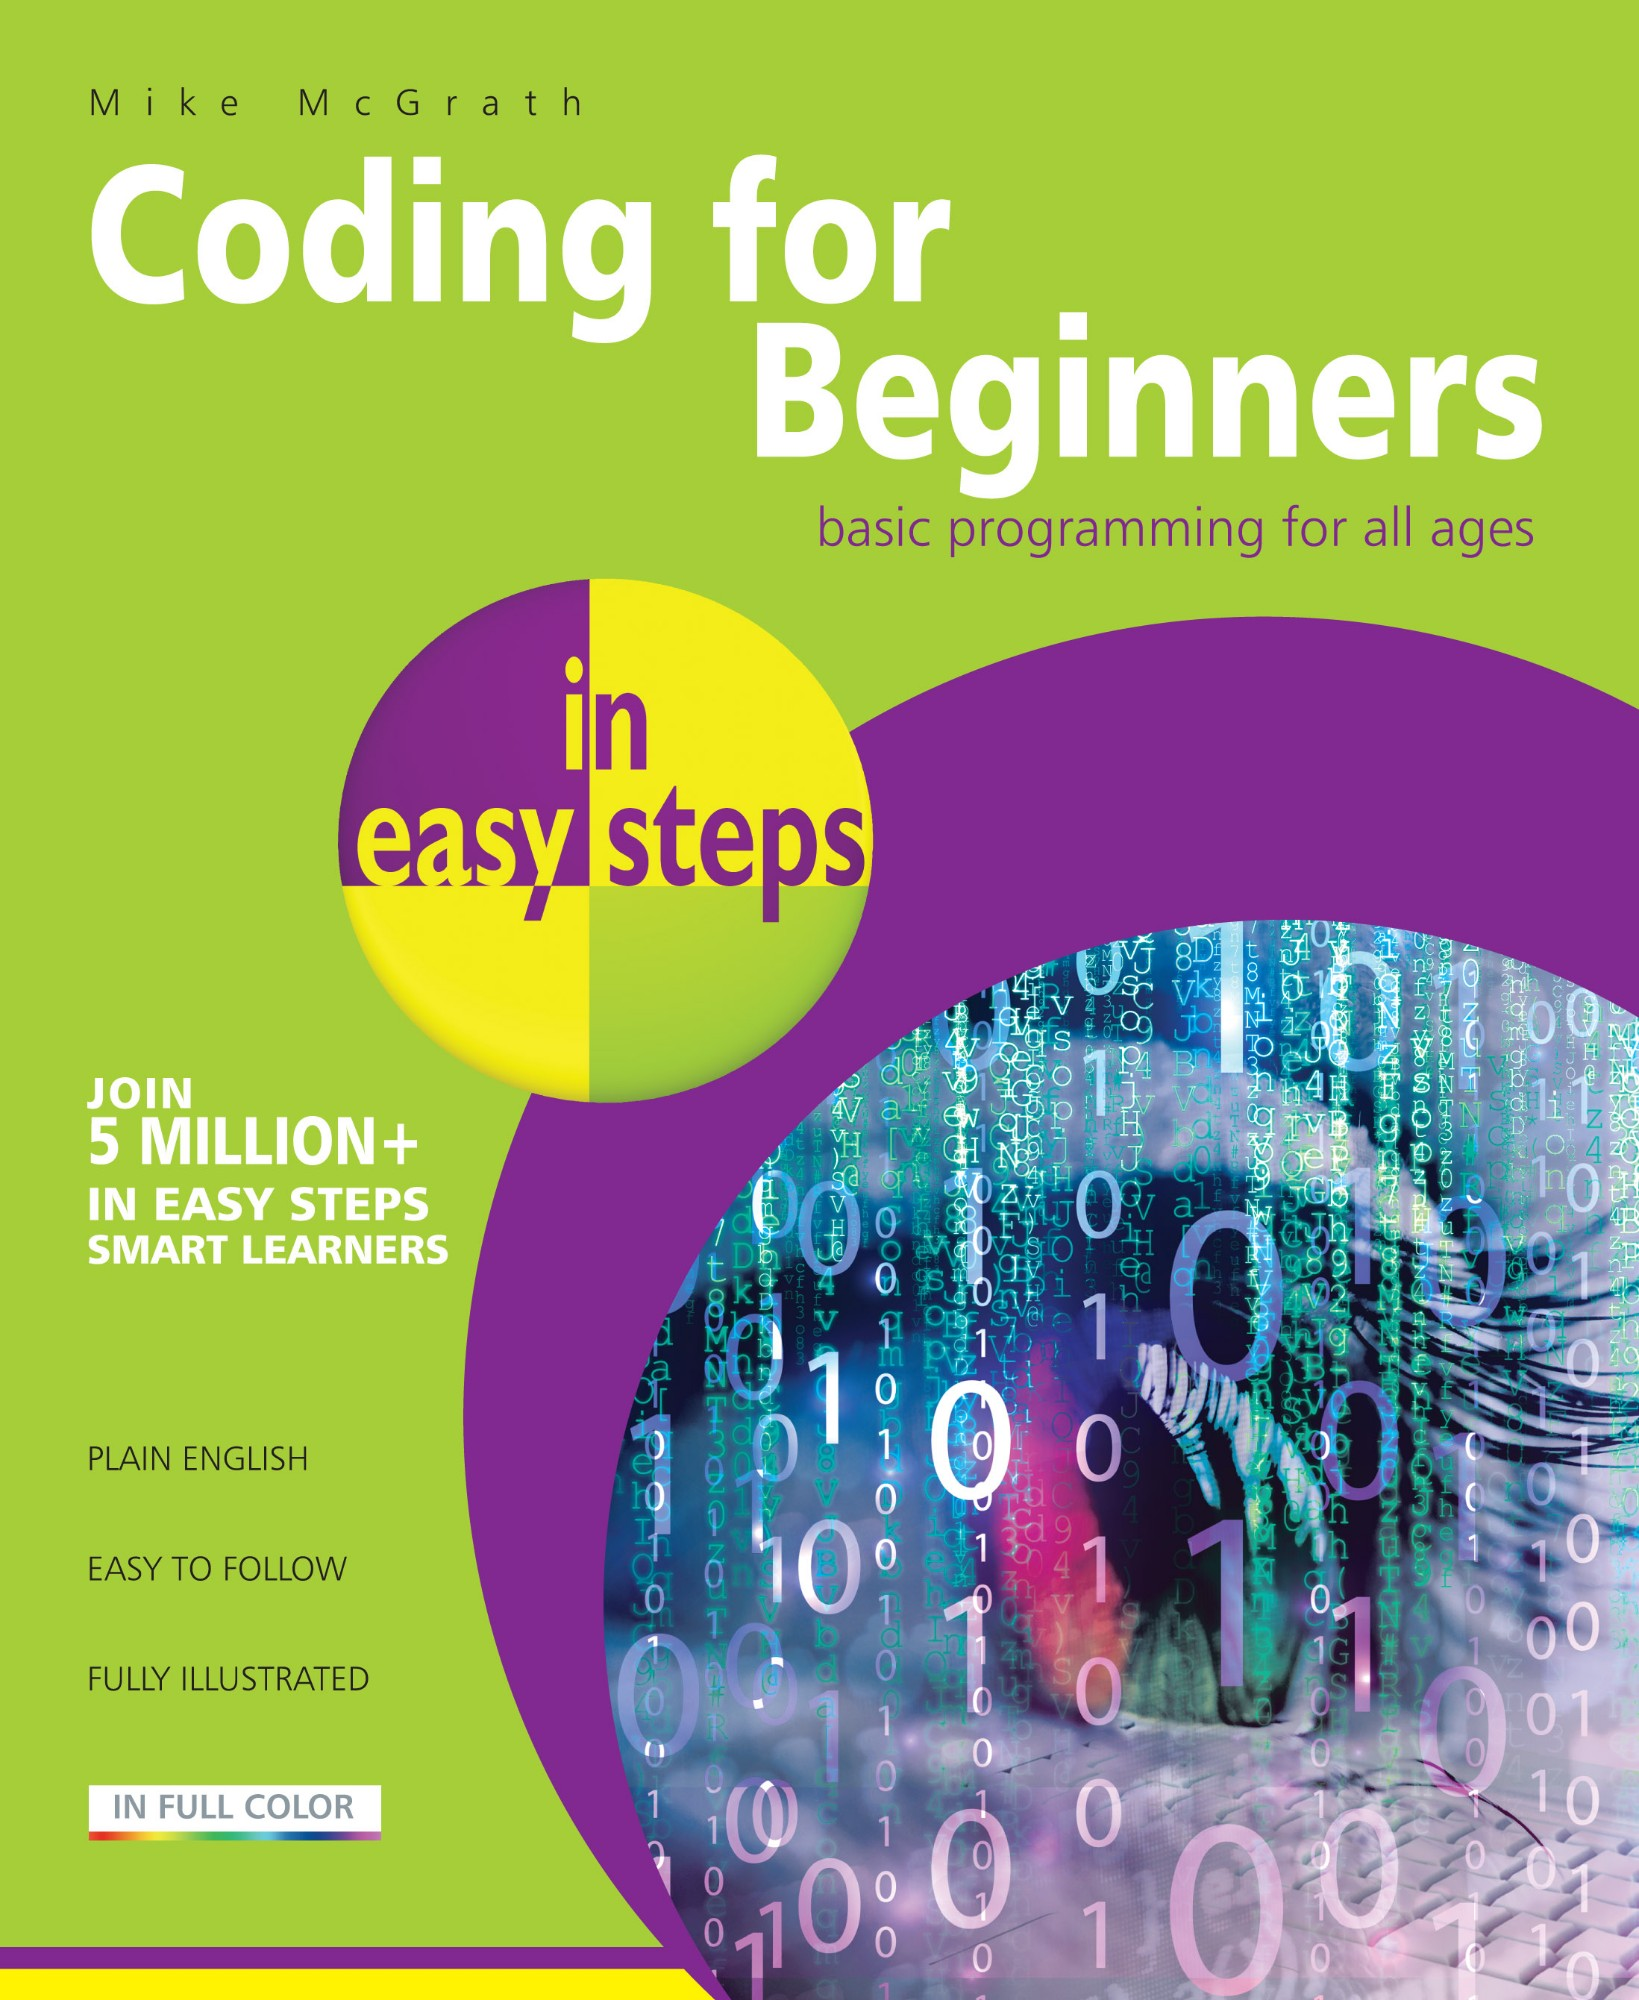 IN EASY STEPS Maplin Manual Coding for Beginners All Ages In Easy Steps Fully Illustrated